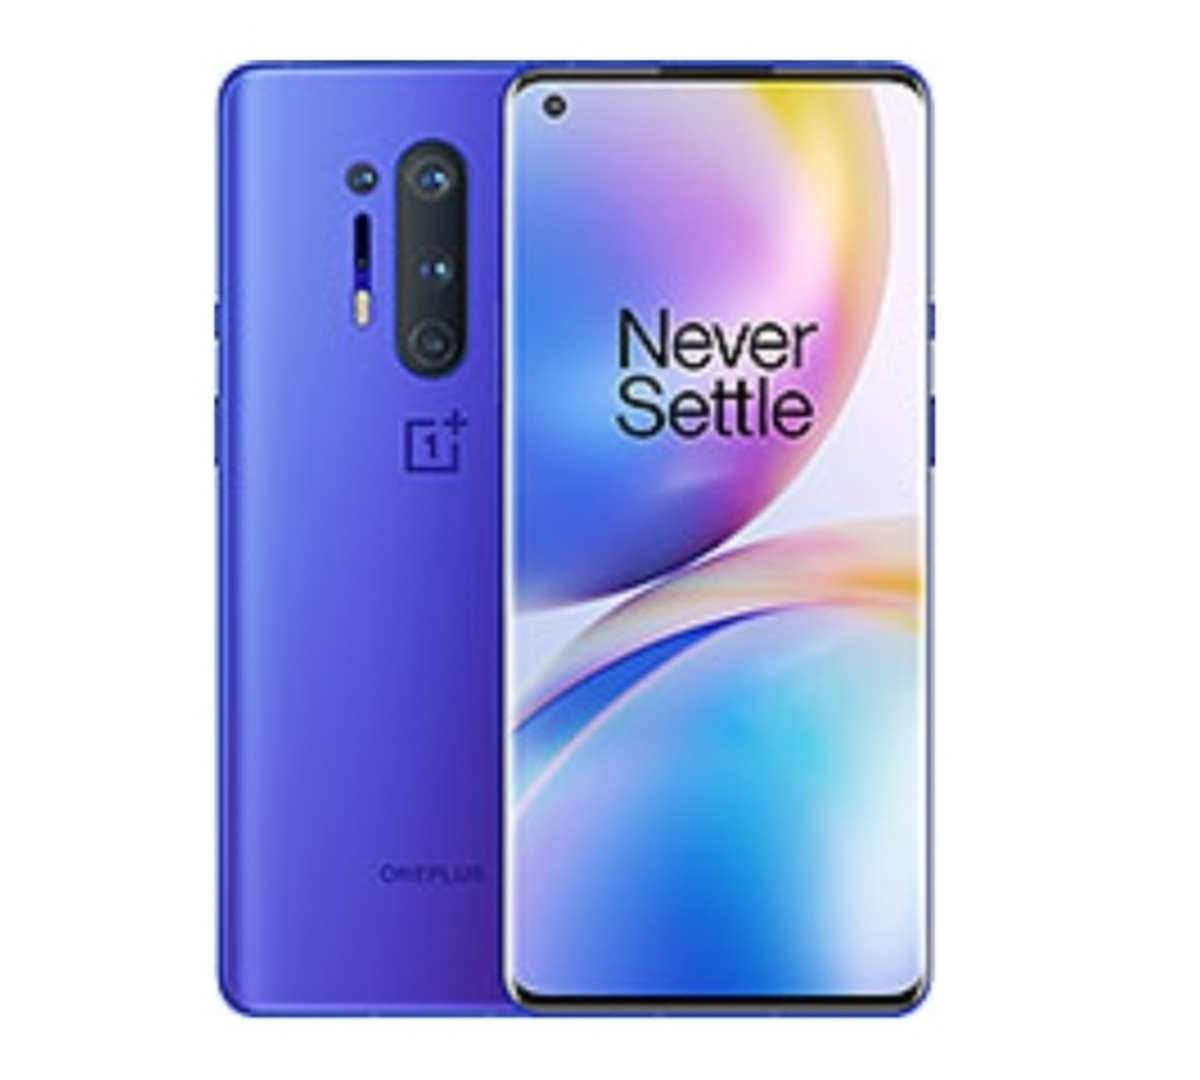 OnePlus 8 Pro image, specs and price in Nigeria.